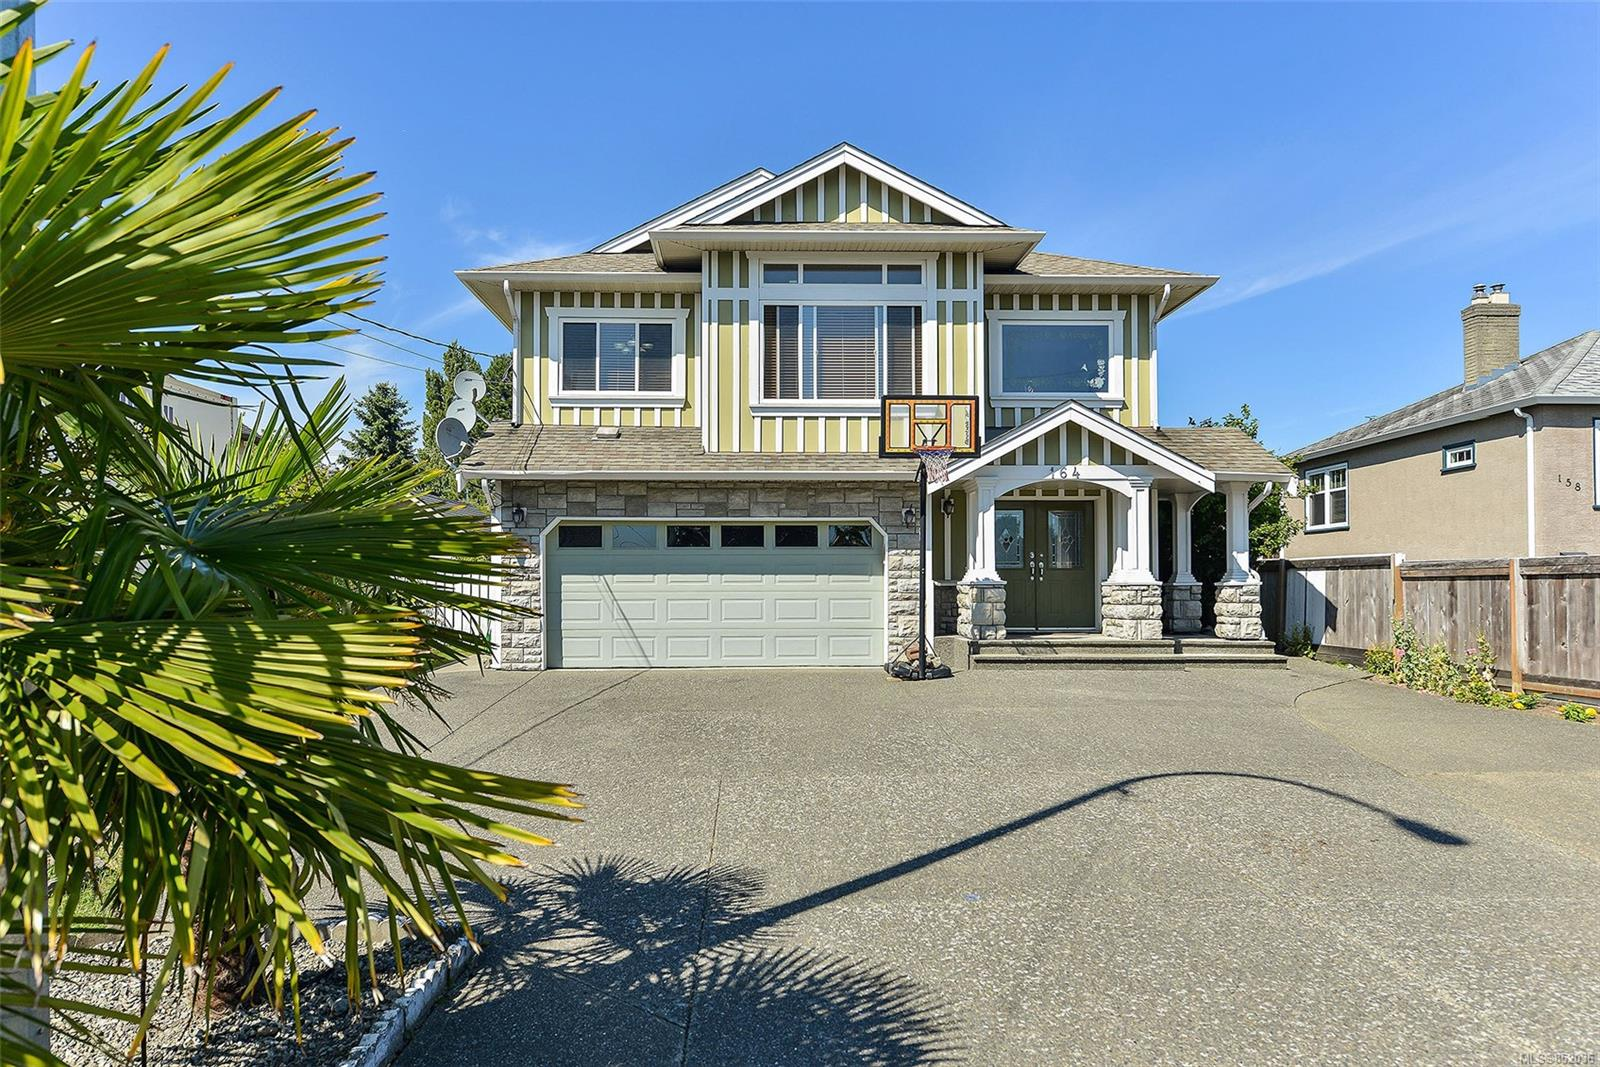 164 Crease Ave, Saanich BC V8Z 1S7